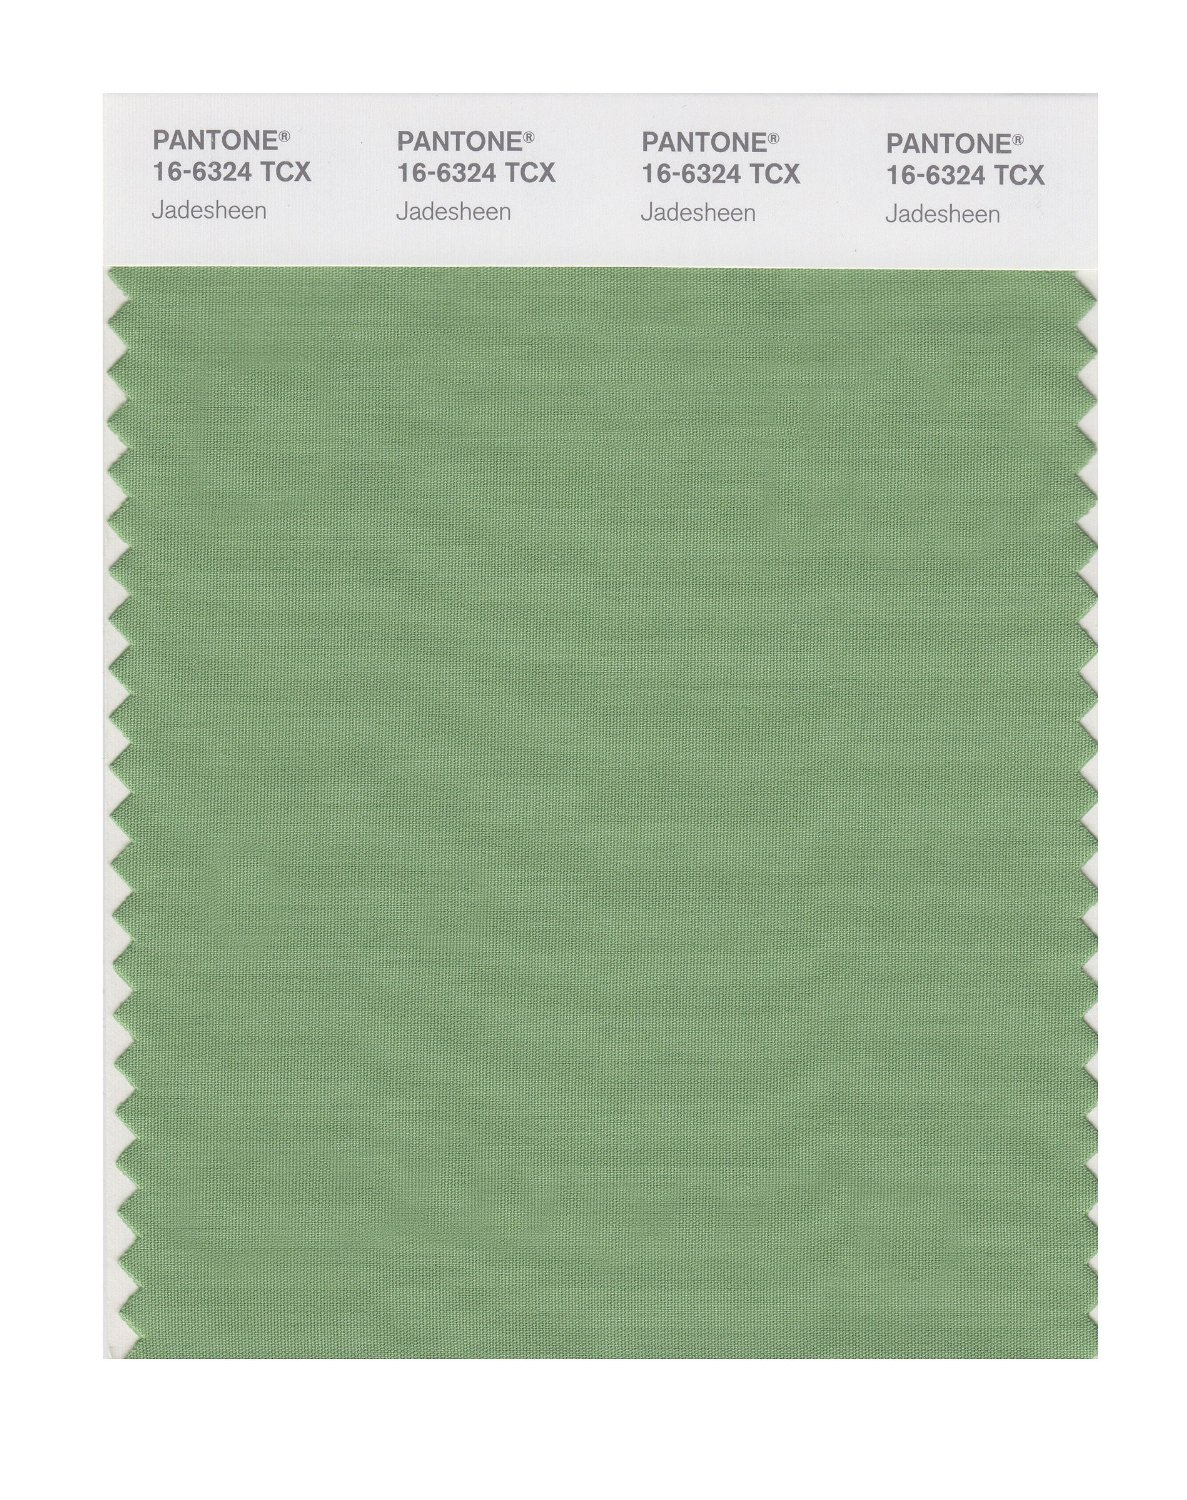 Pantone Smart Swatch 16-6324 Jadesheen